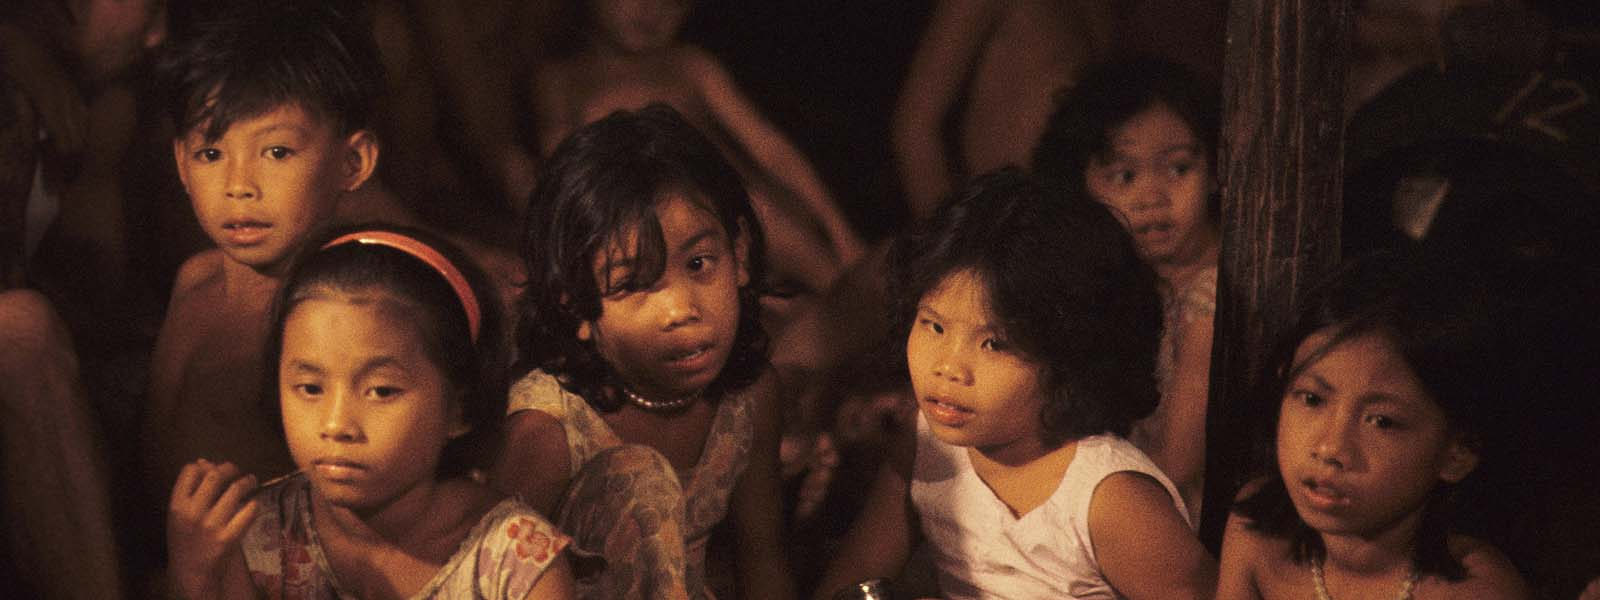 W10059-Dayak-children-in-light-of-fire-stretch